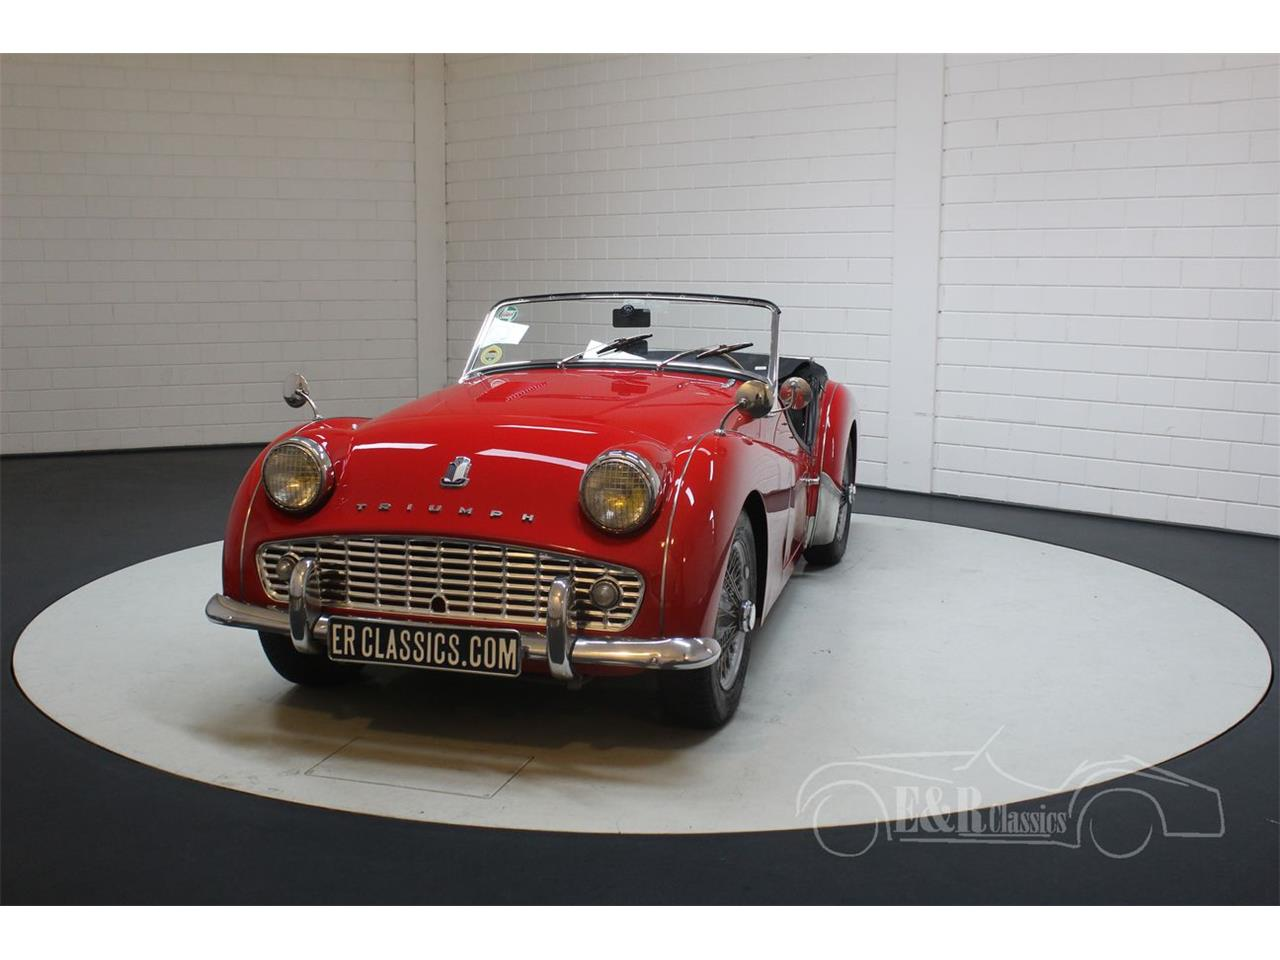 Large Picture of '60 TR3A located in Waalwijk noord brabant - $41,400.00 Offered by E & R Classics - Q31H